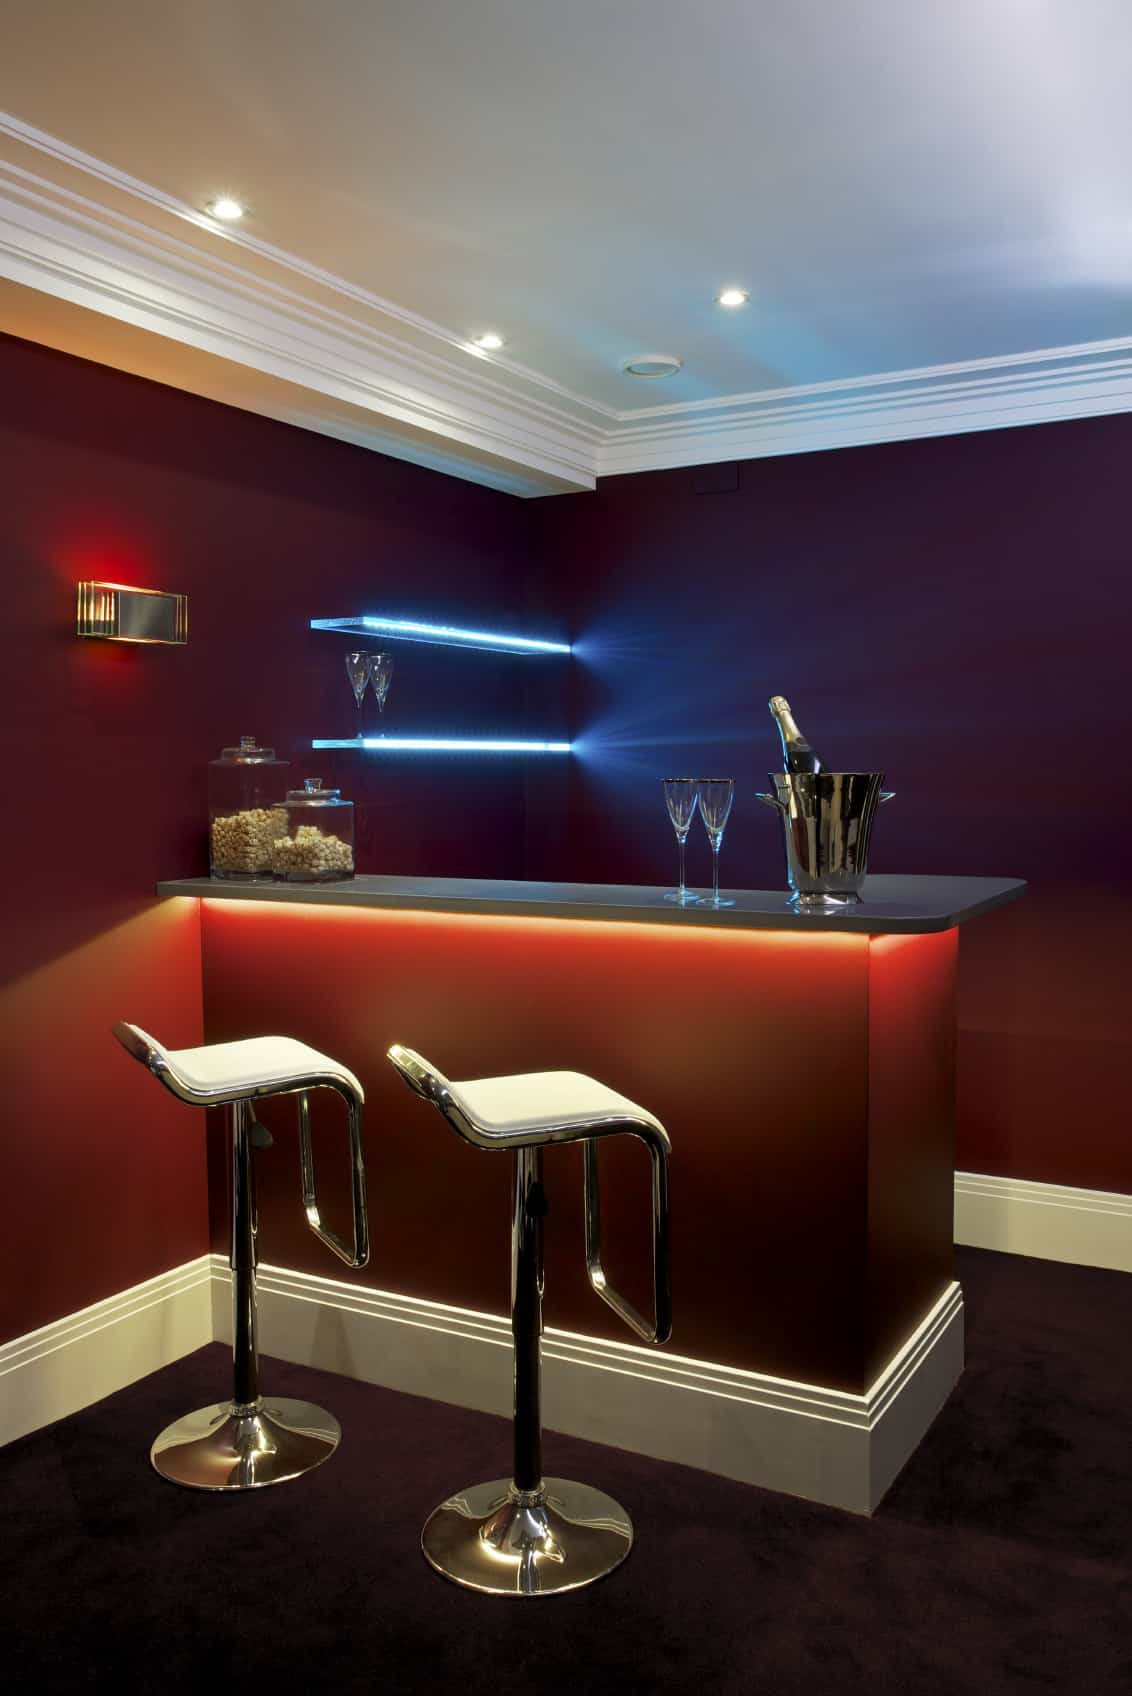 This bar features elegant carpet flooring and charming lighting all over the place. The red walls and counter, along with the couple of cozy bar stools add elegance to the room.